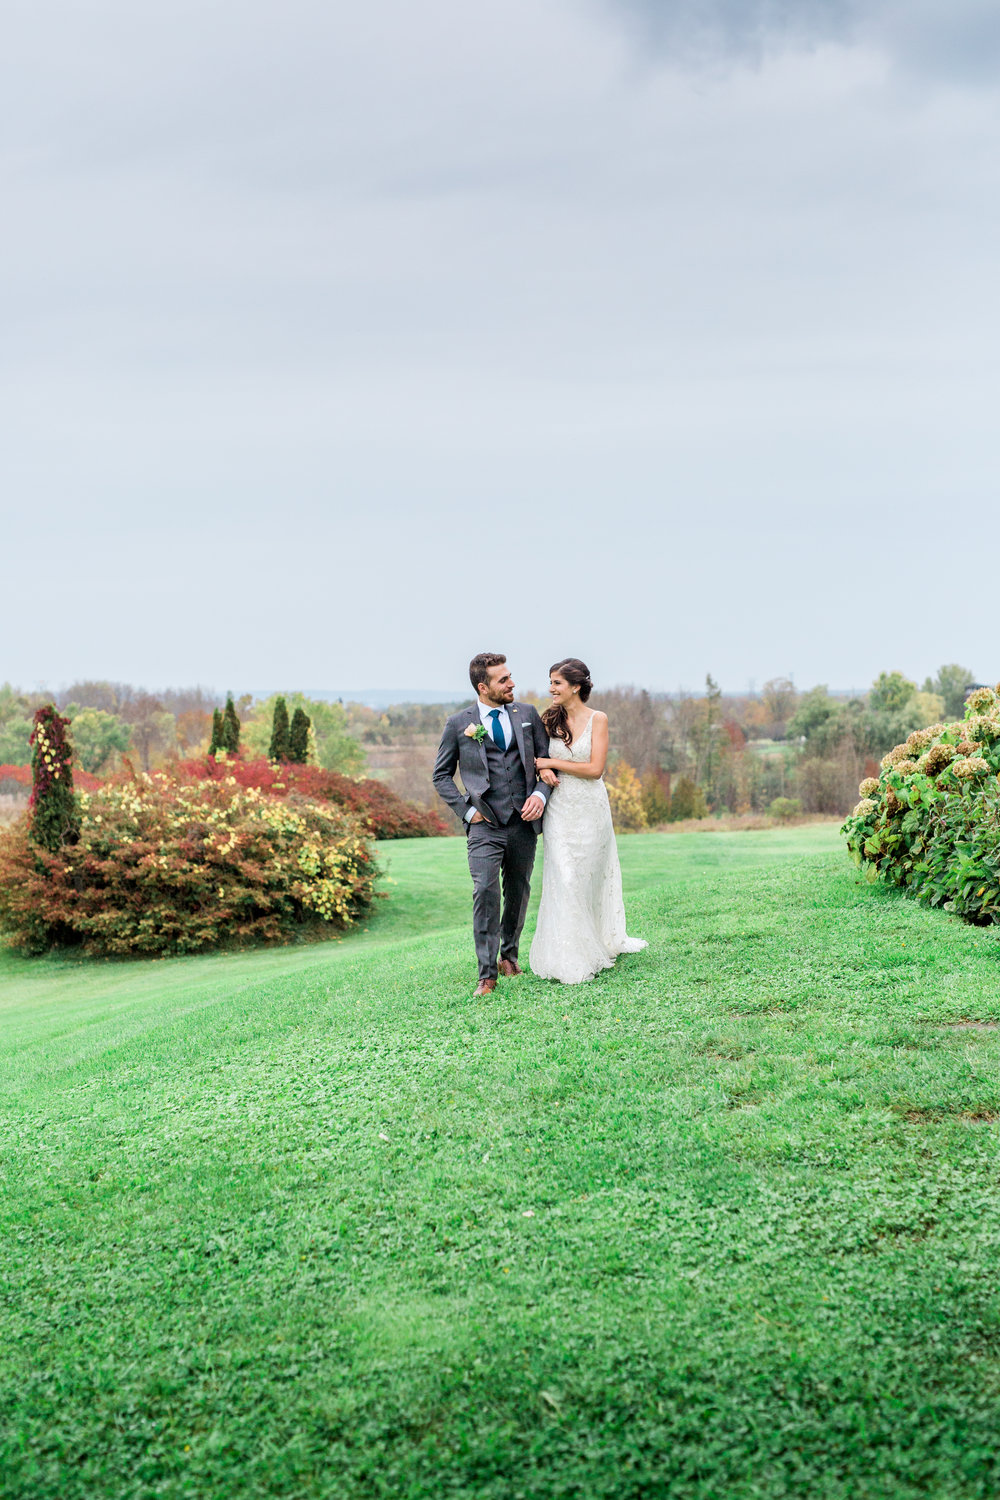 Amir-Golbazi-Danielle-Giroux-Photography_Toronto-Wedding_Cedarwood_Rachel-Paul_450.jpg